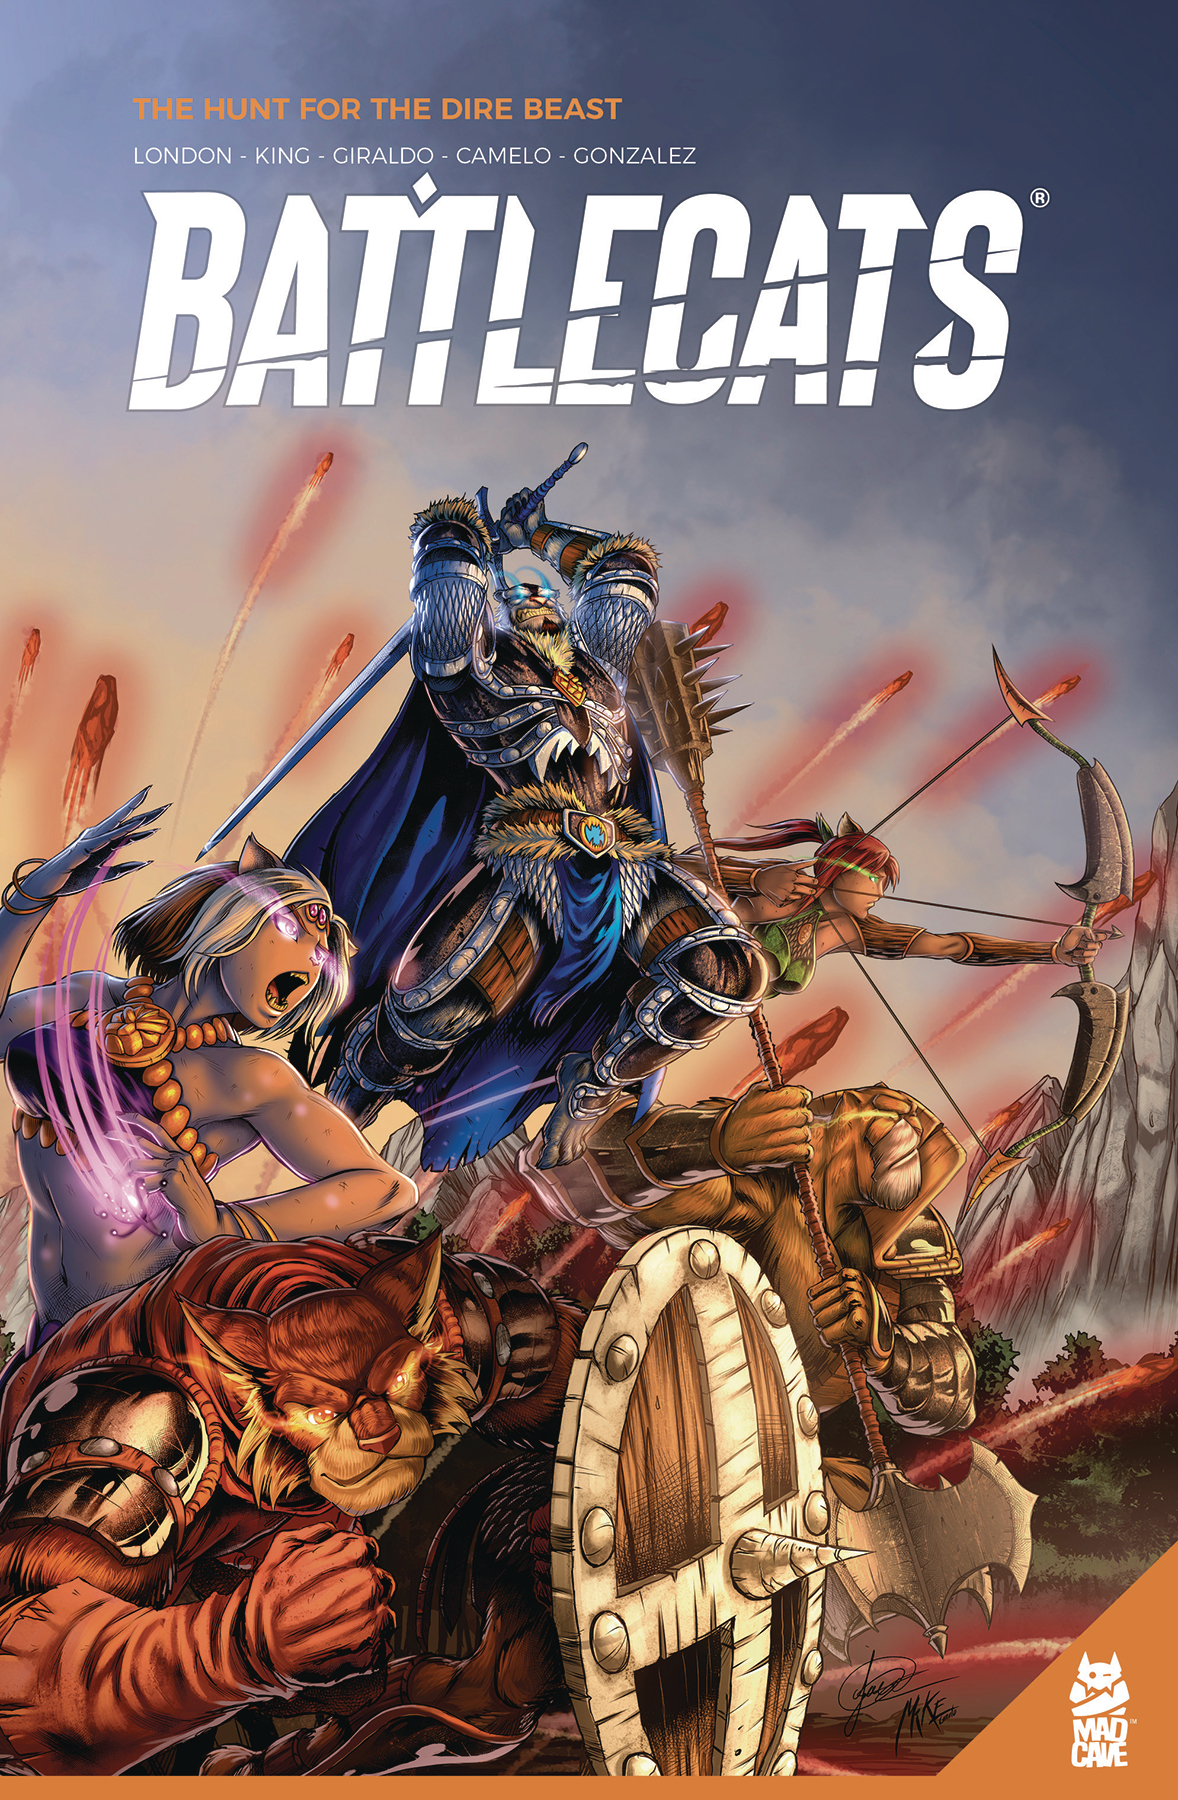 Battlecats Volume 1, The Hunt for the Dire Beast  is out now.